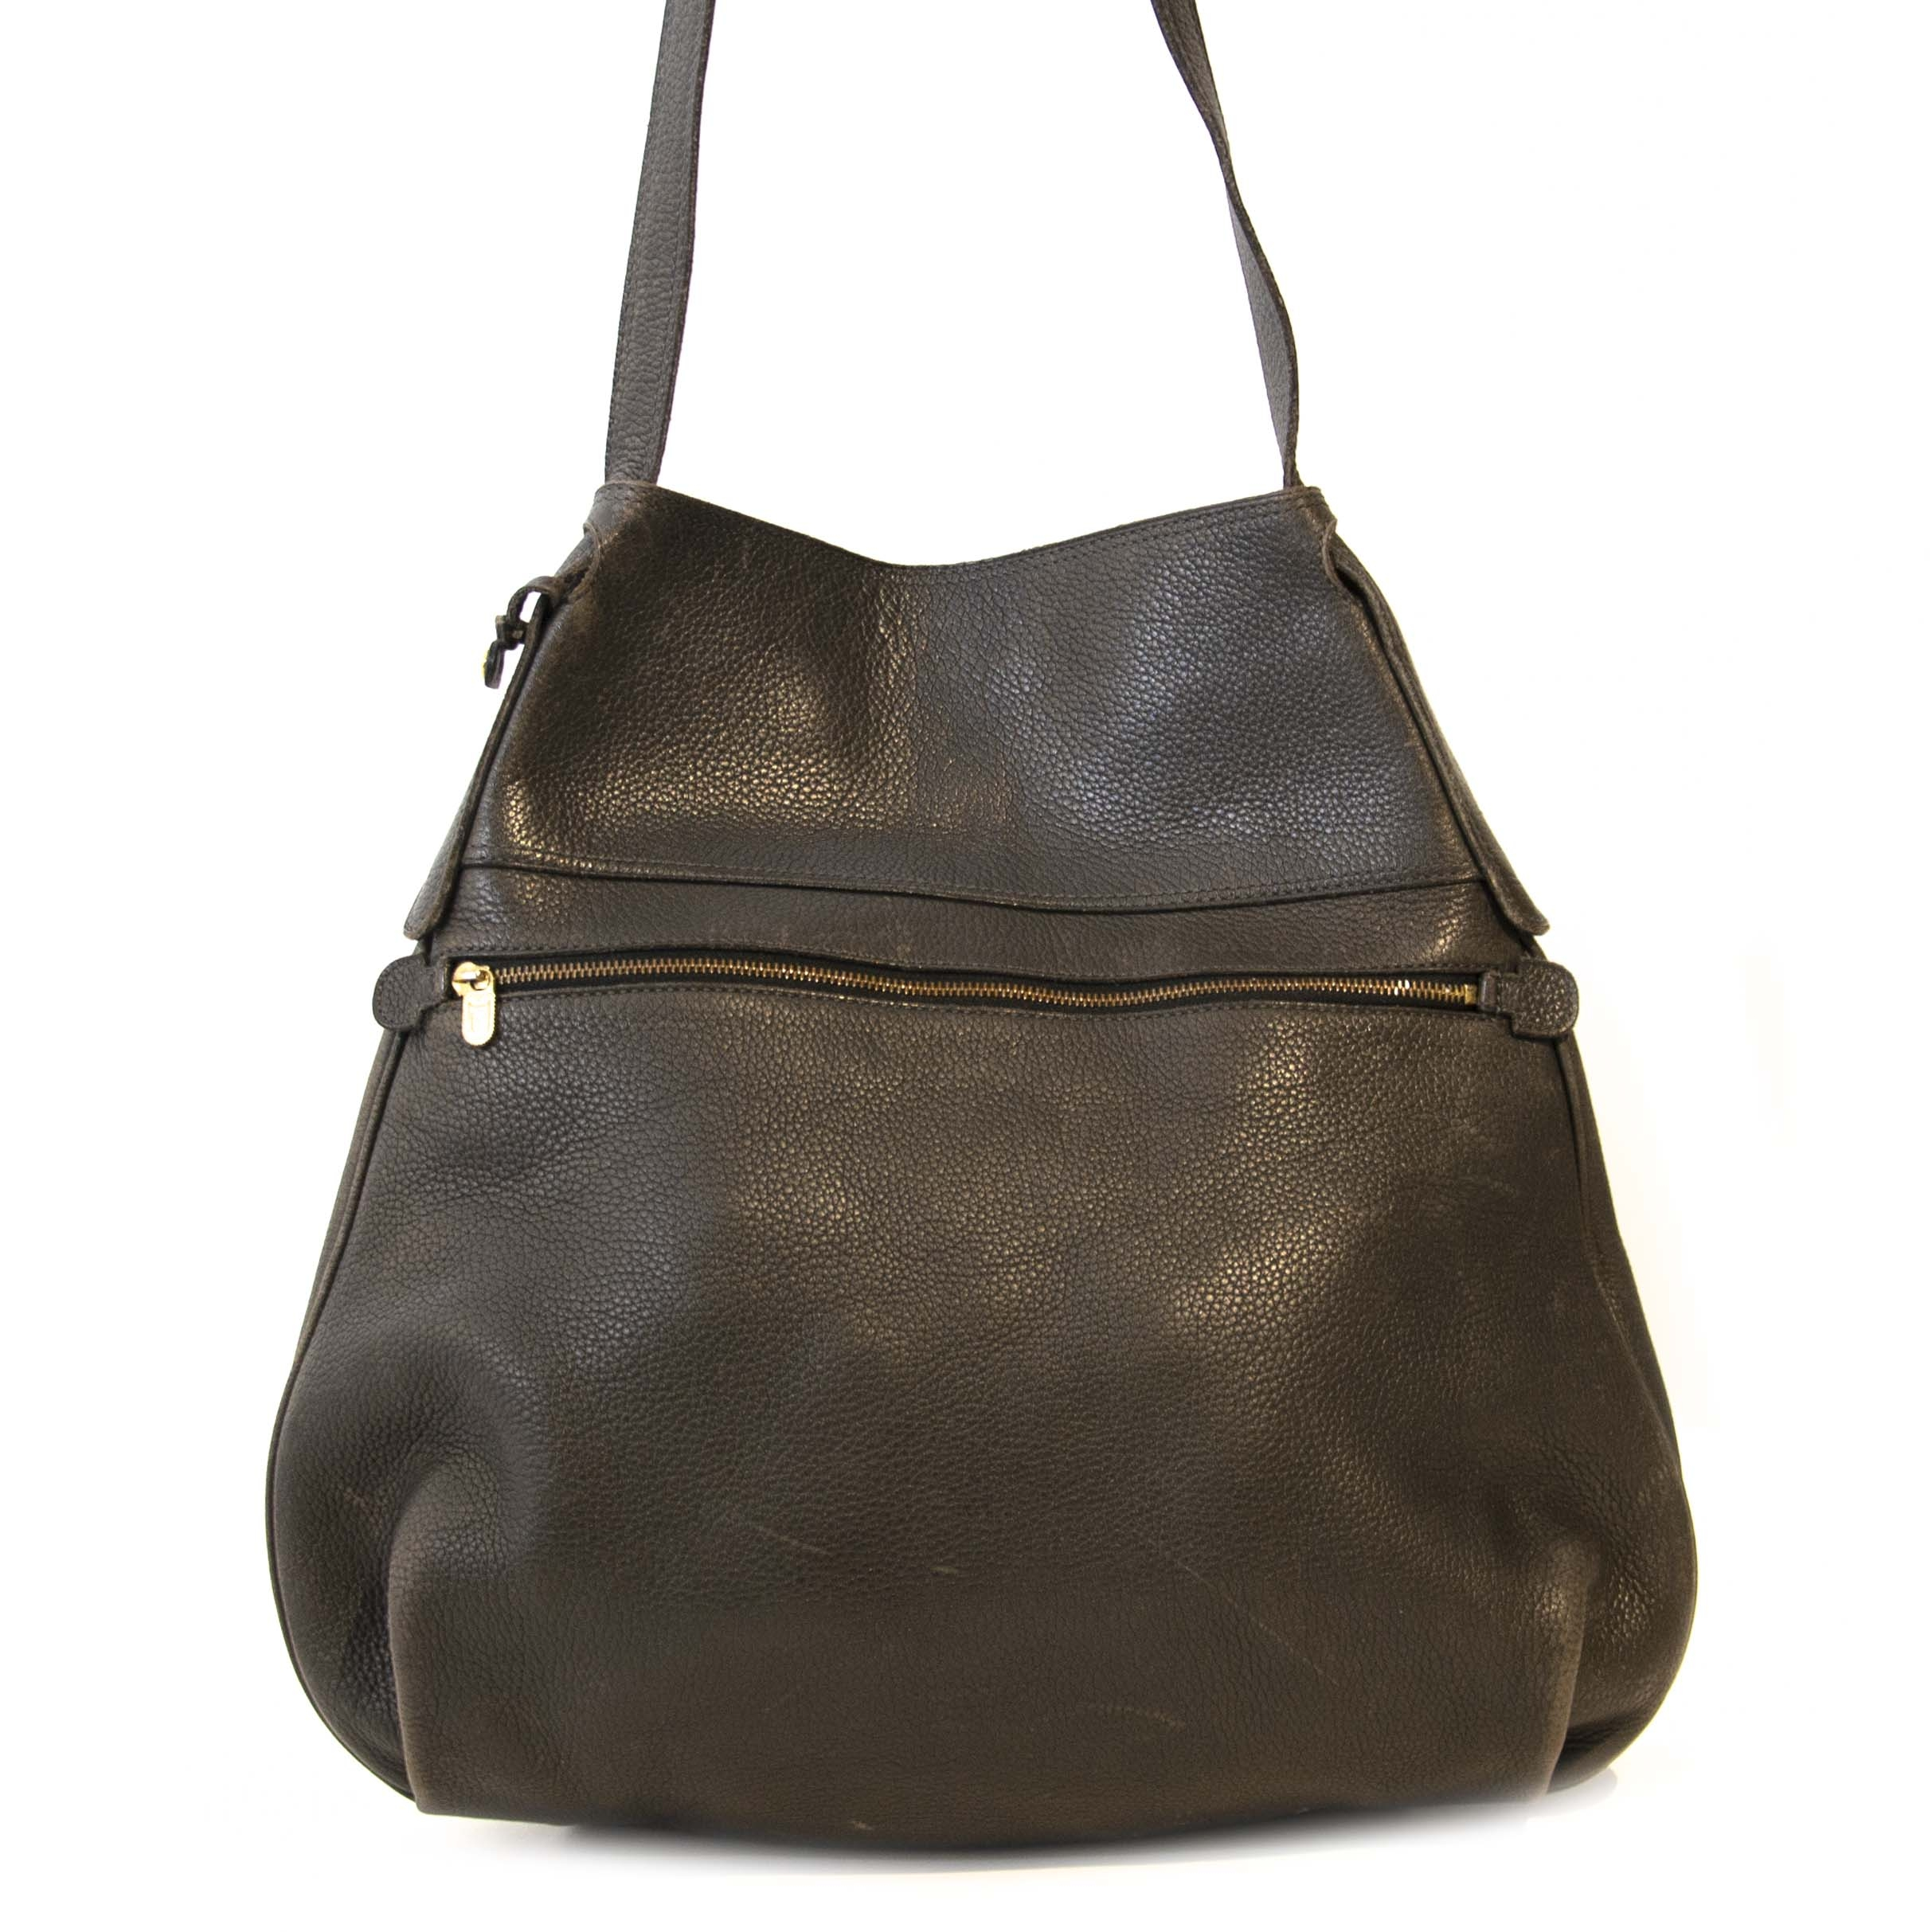 Delvaux Dark Brown Leather Faust Bag. Buy authentic secondhand Delvaux bags at Labellov vintage webshop for the lowest price. Koop authentieke tweedehands Delvaux tassen bij Labellov vintage webshop aan de laagste prijs. Veilig online shoppen.